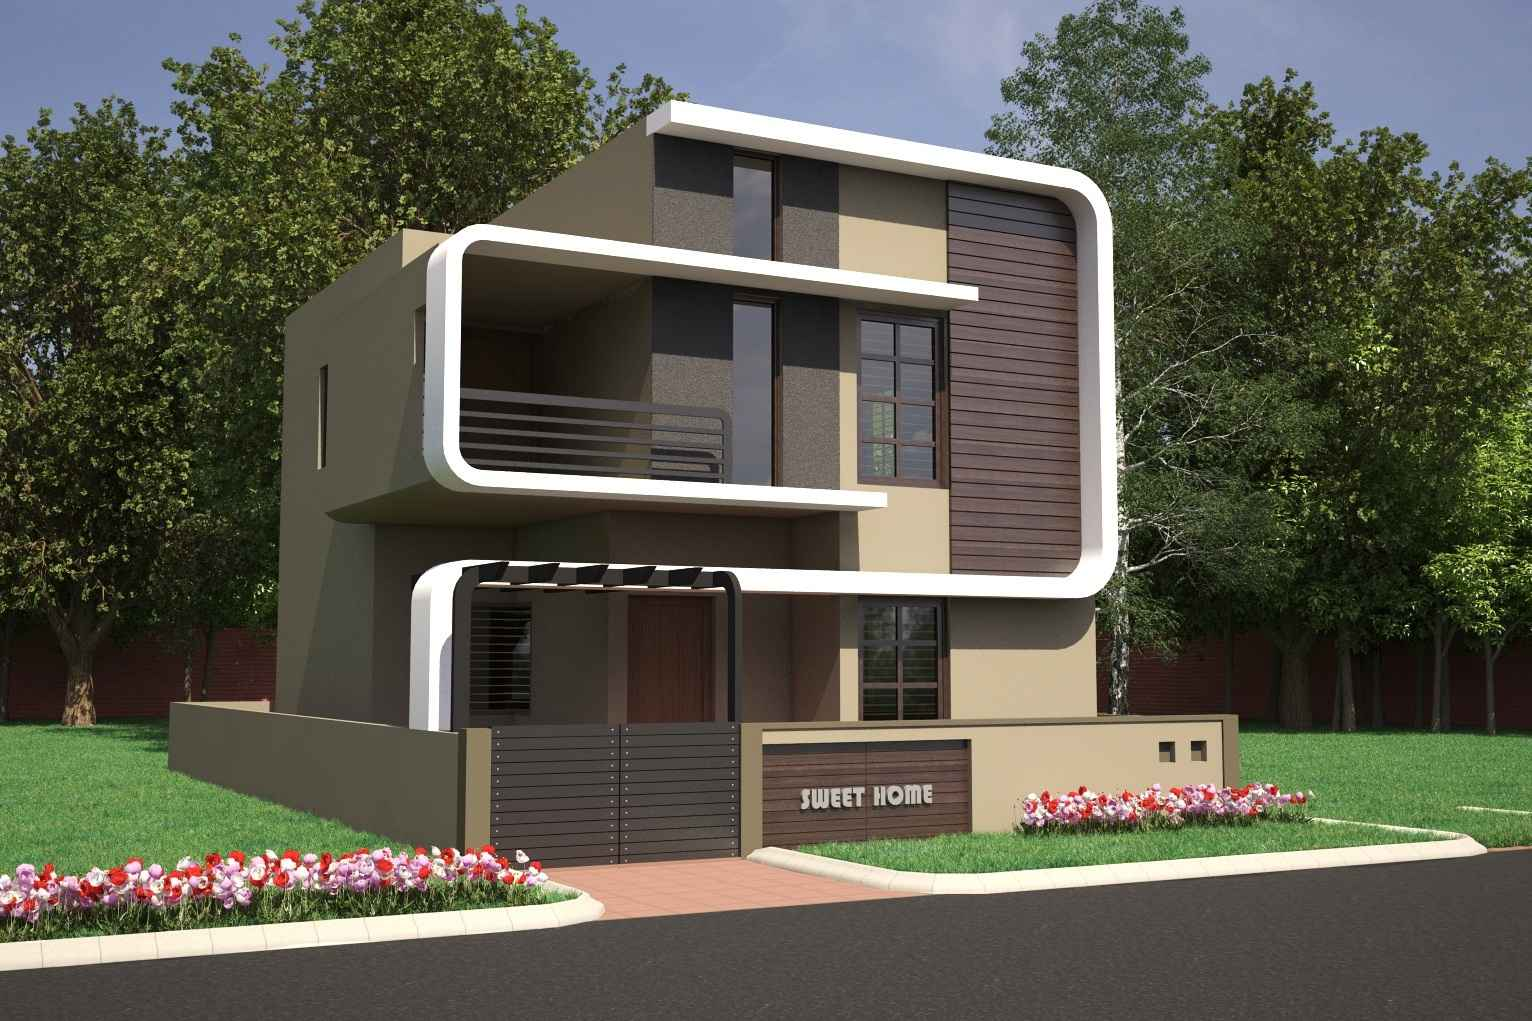 G9s g9 spacious dattagalli by g9 projects in mysore for Home design 40 40